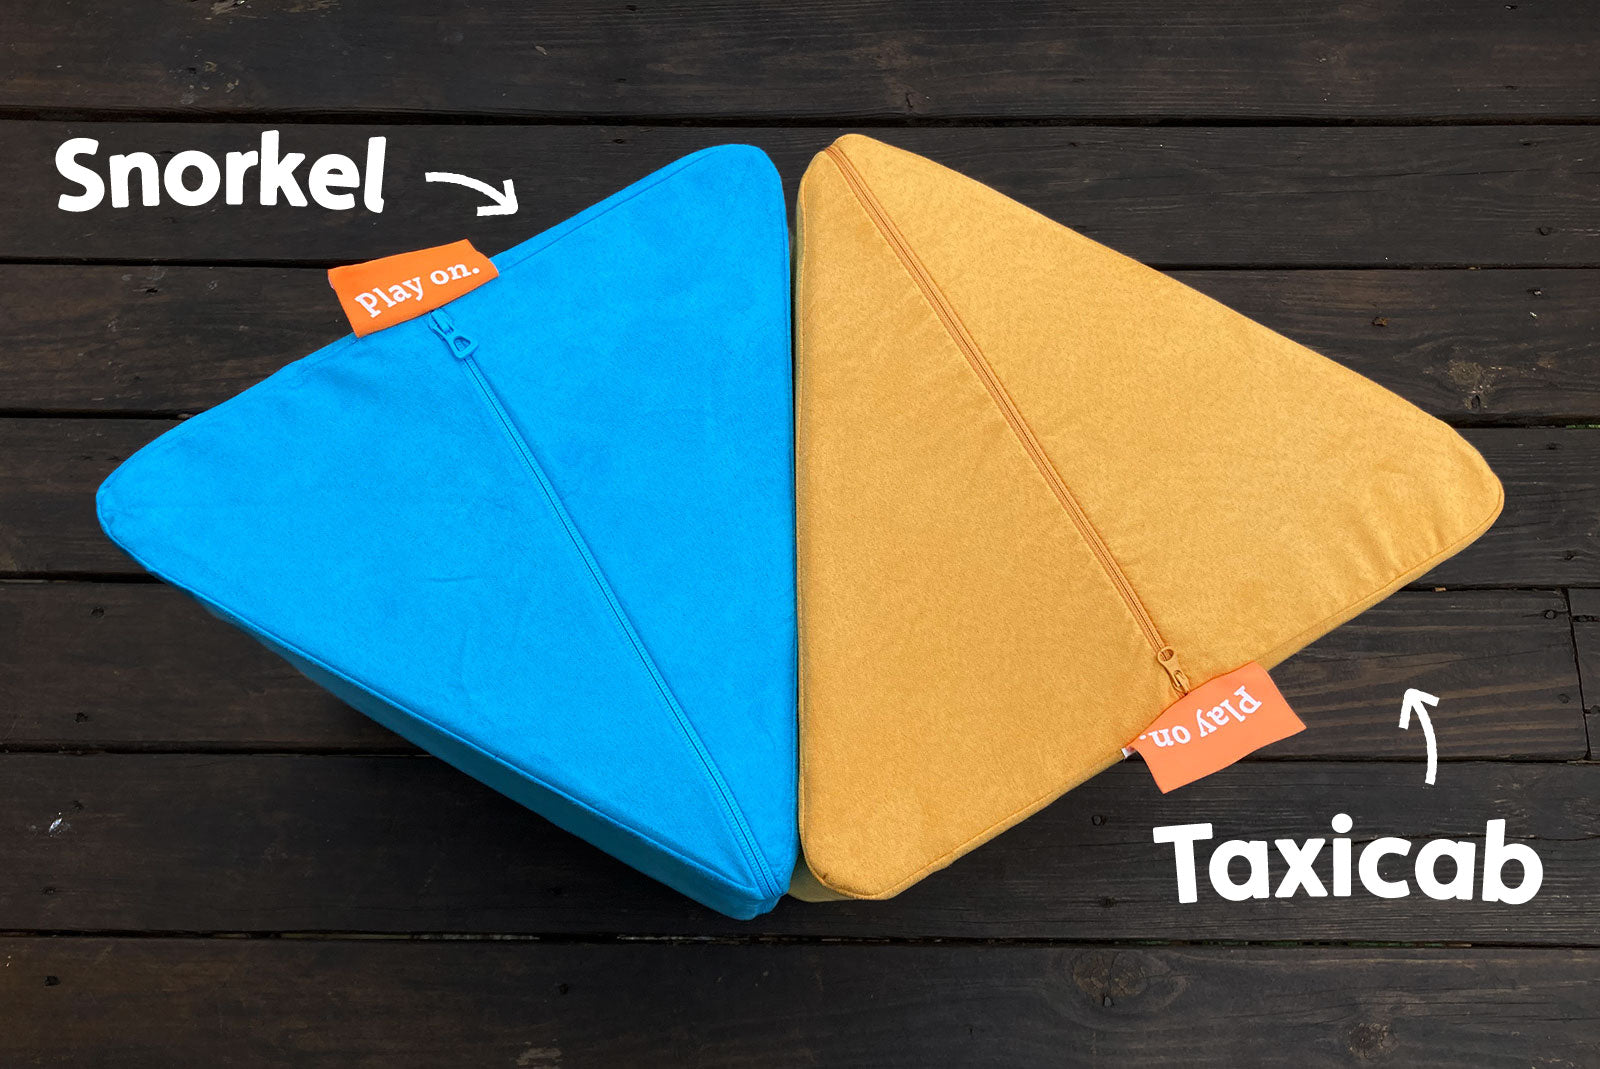 Comparison between Nugget colors: Snorkel — a bright, popping aquamarine; Taxicab —a warm, buttery yellow